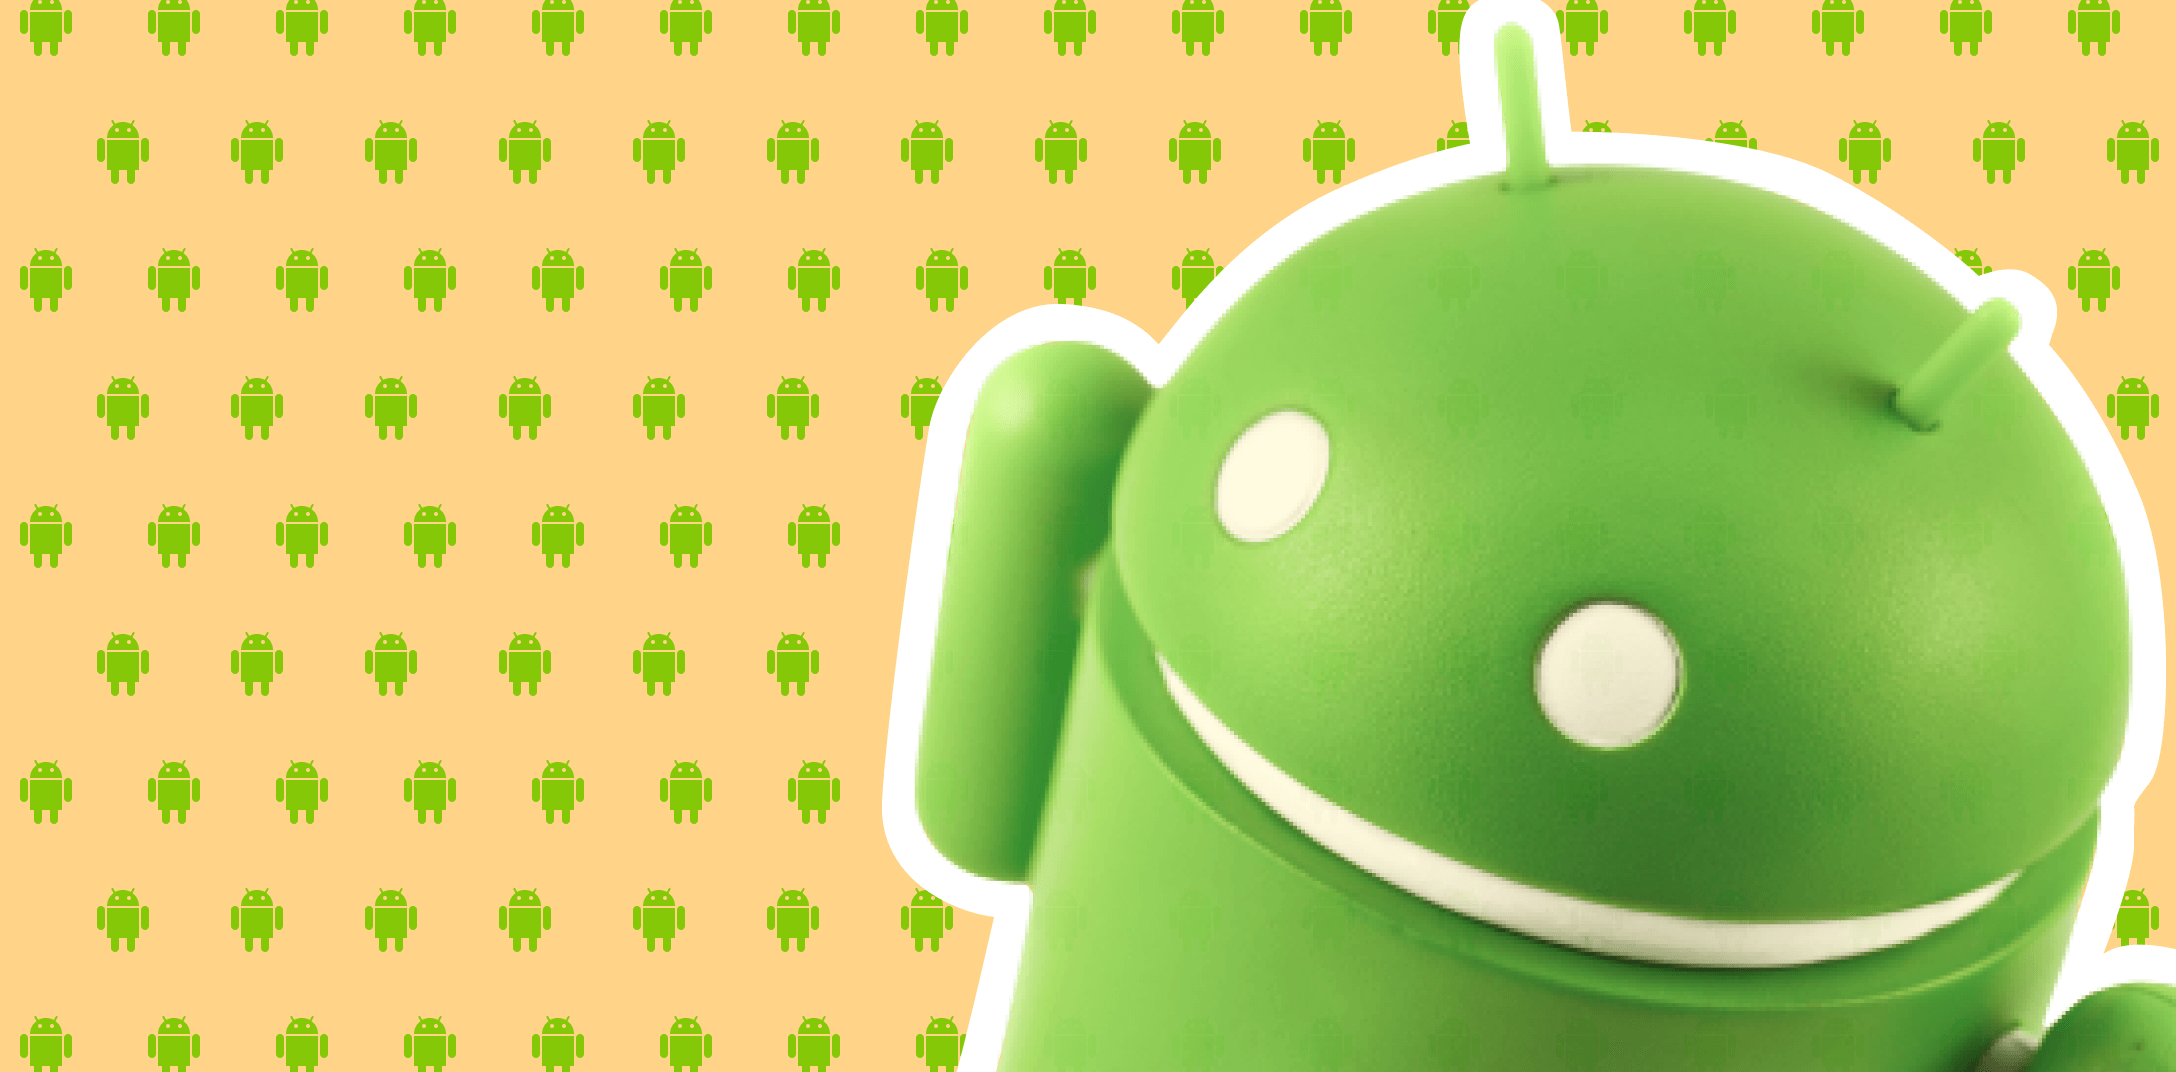 Android official character on the yellow background